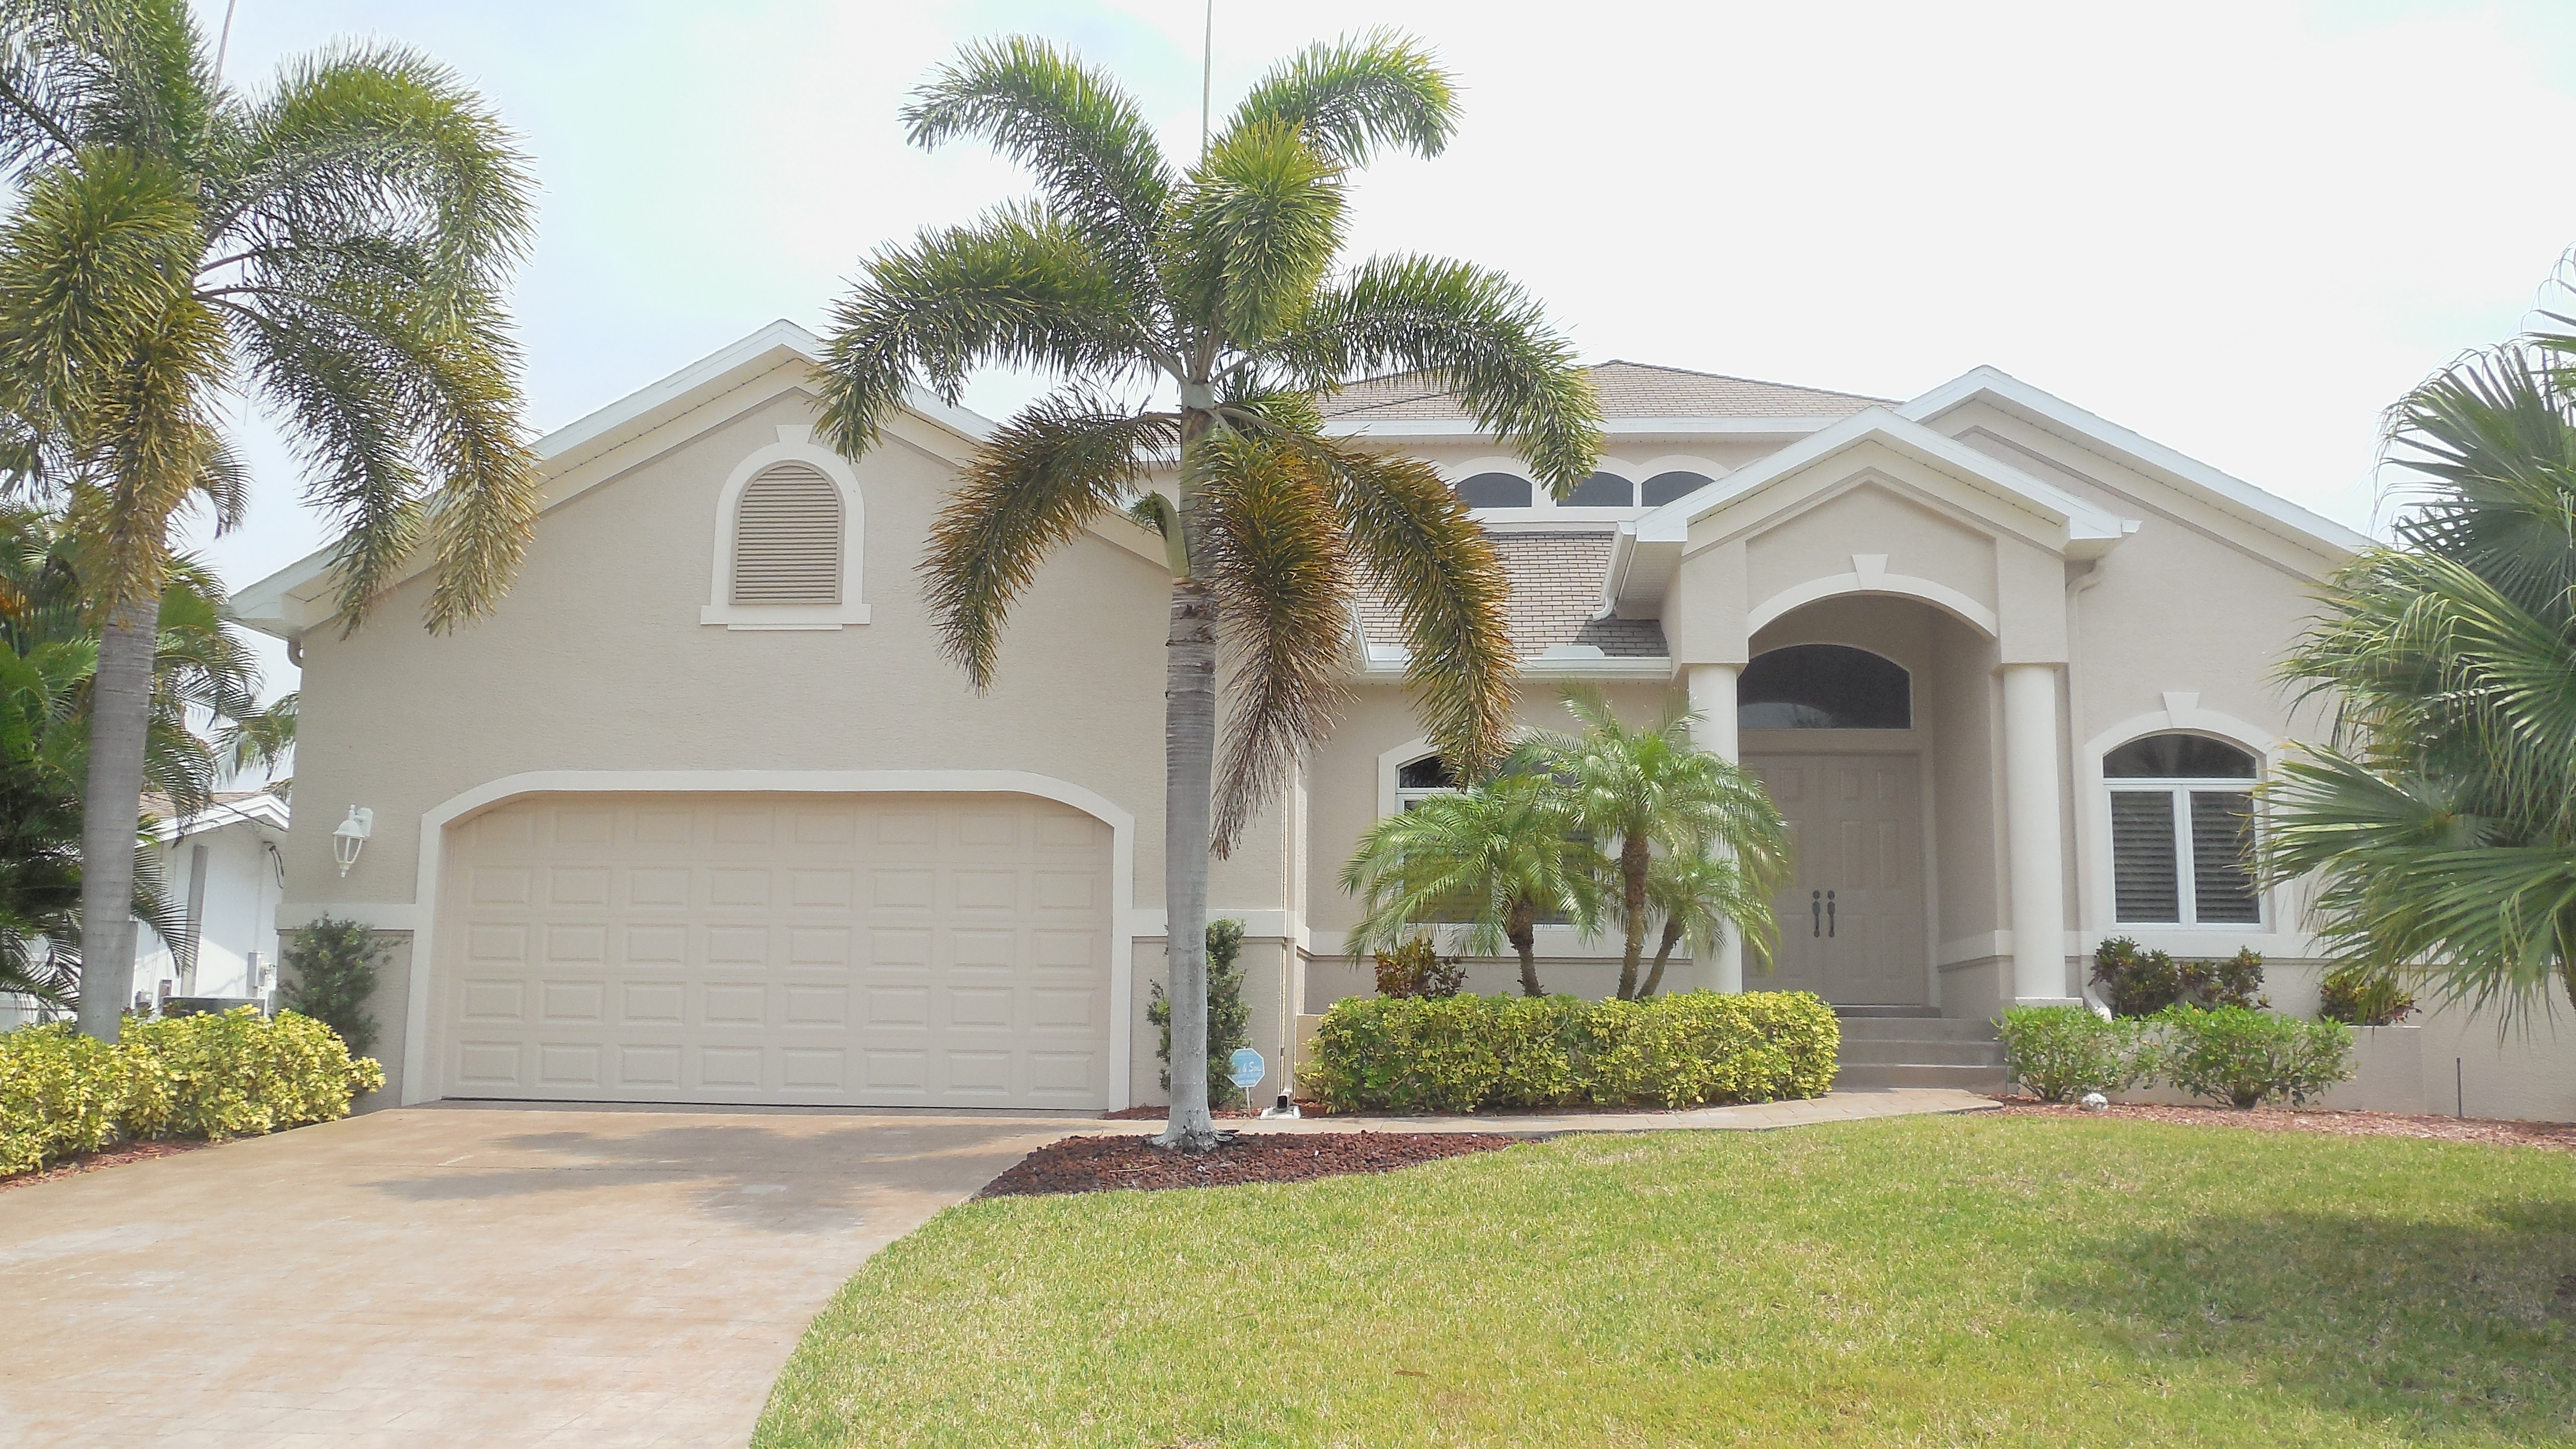 Featured Homes for Sale in Greater Fort Myers